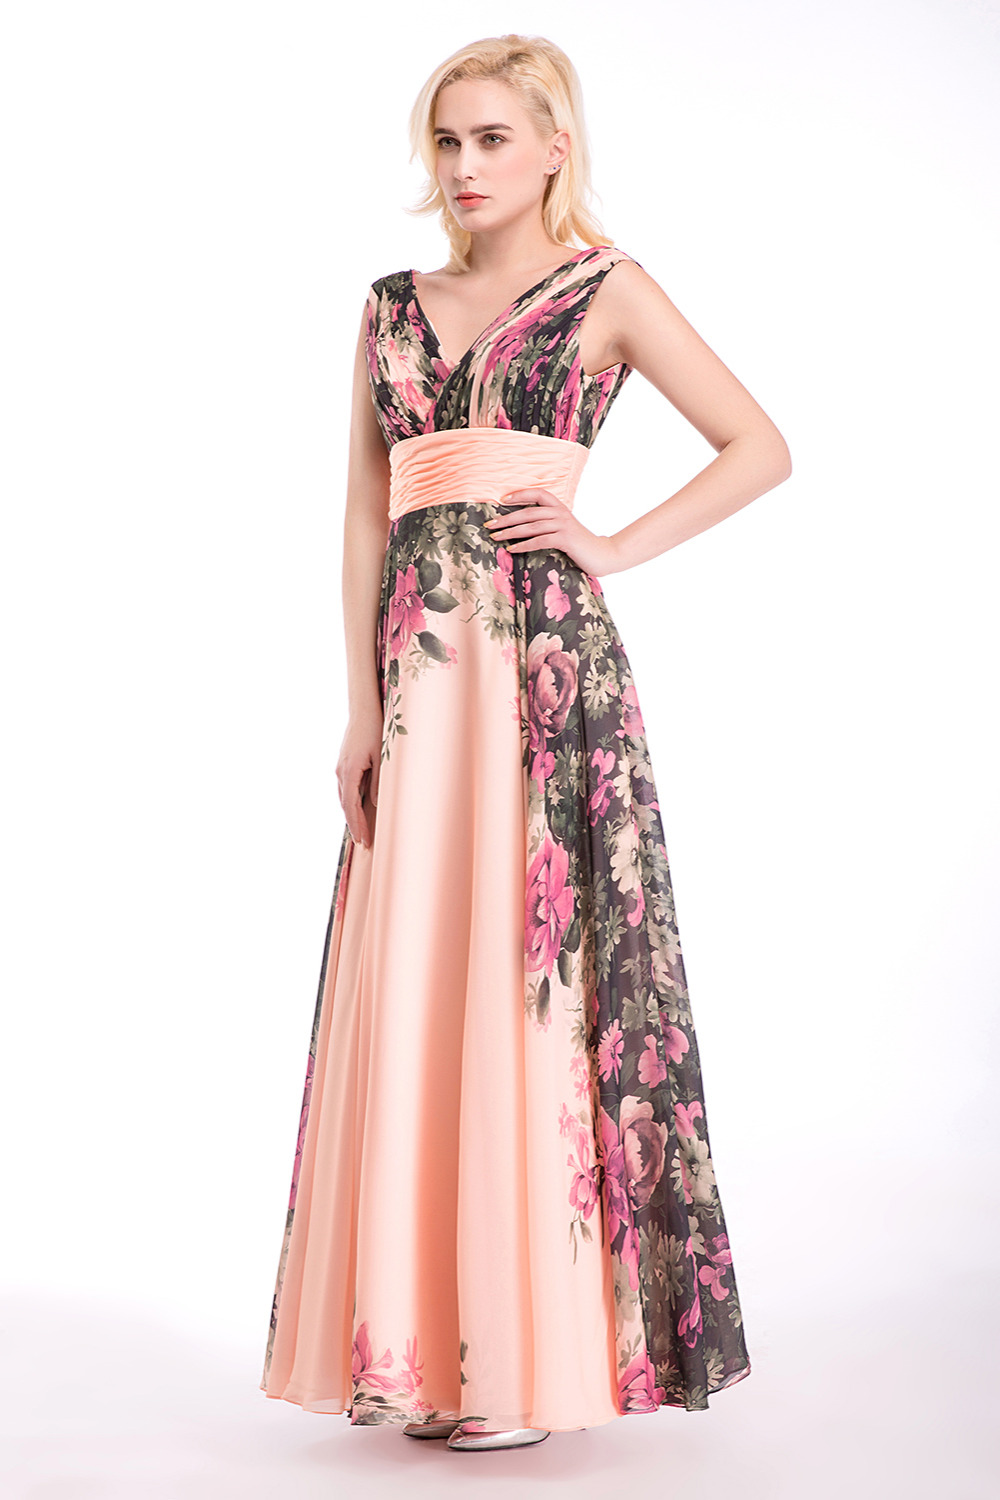 Compare Prices on Cheap Print Prom Dresses- Online Shopping/Buy ...